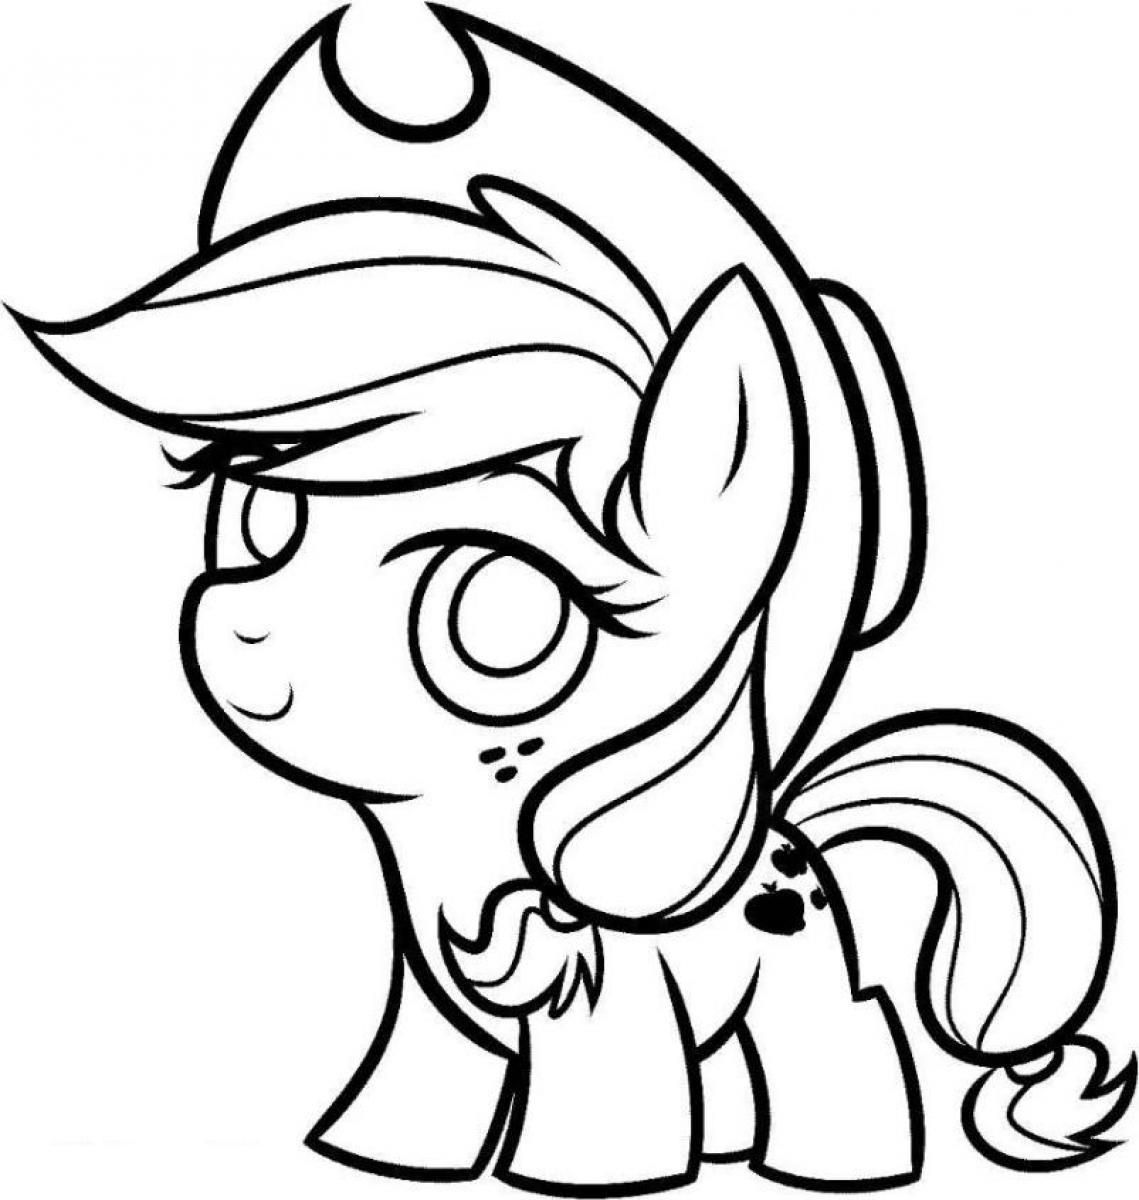 Baby Applejack My Little Pony Coloring Cute Coloring Pages